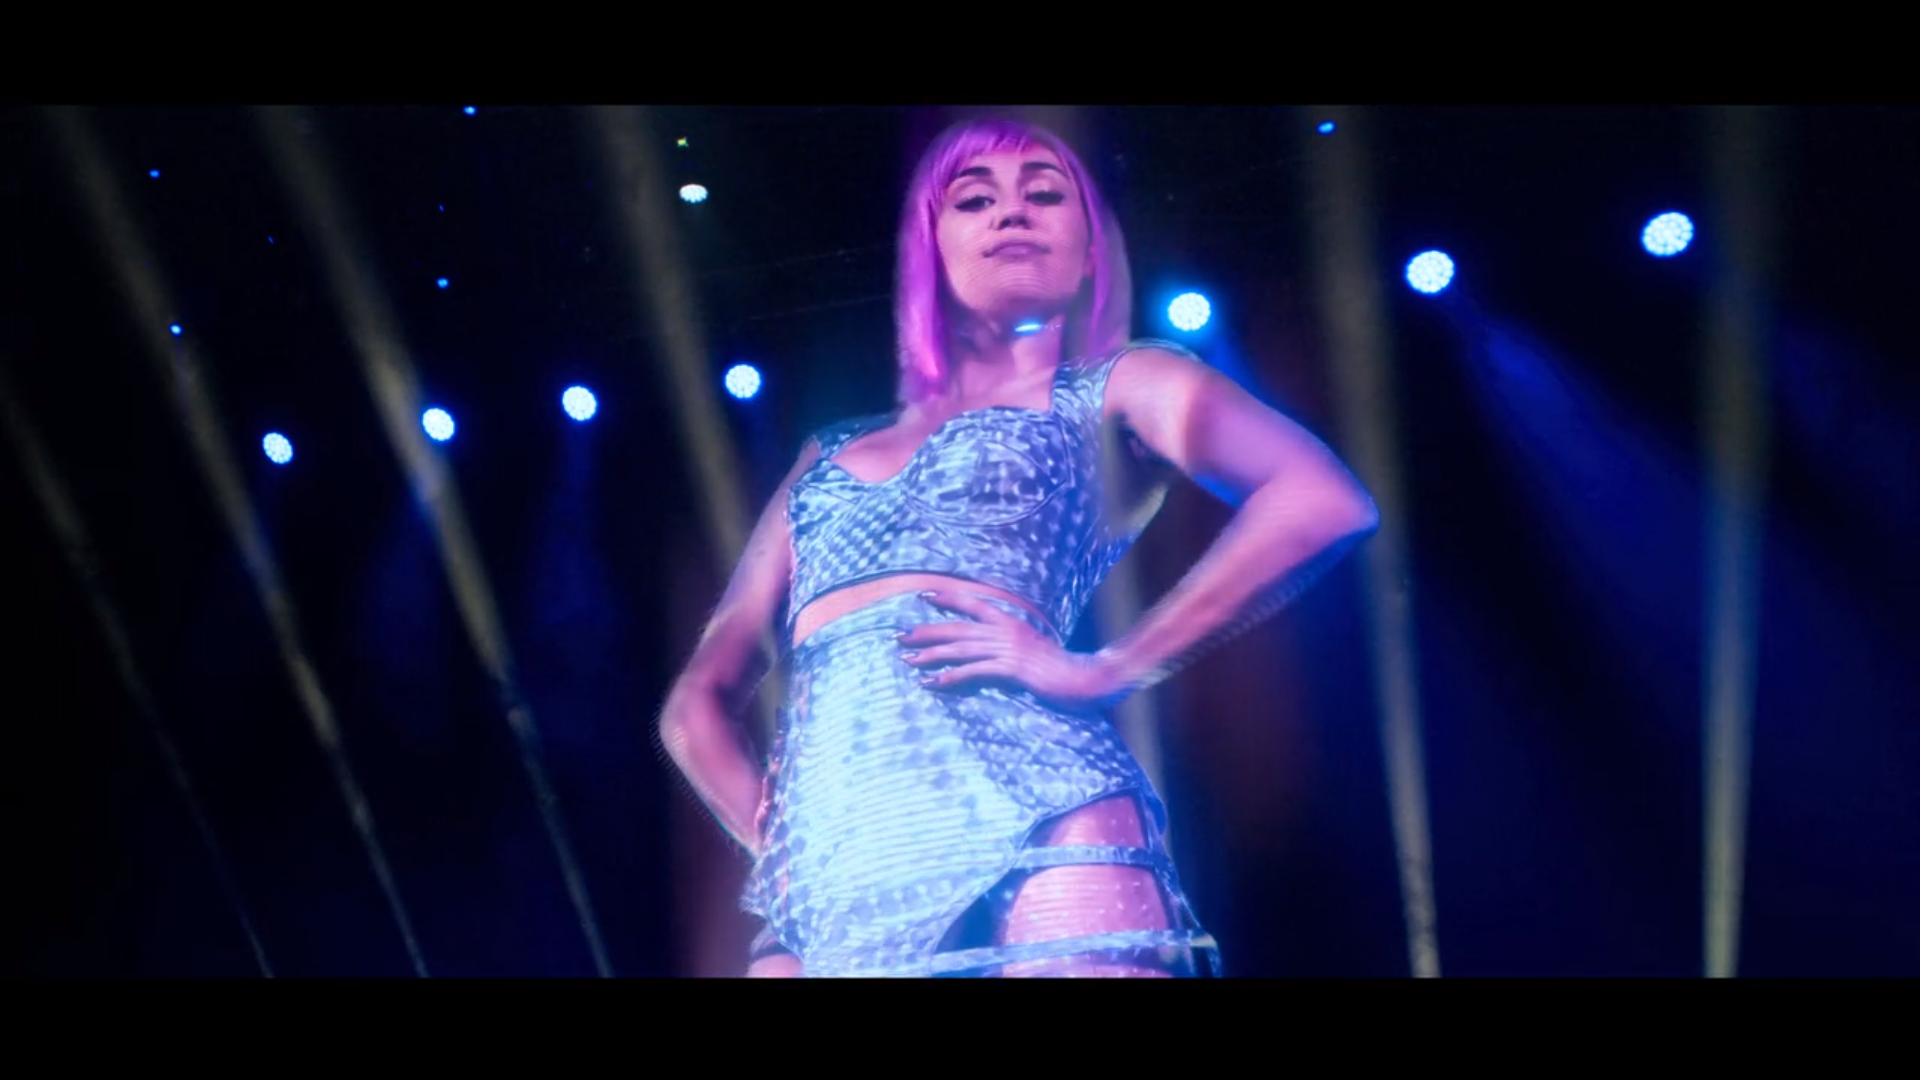 https://television-b26f.kxcdn.com/wp-content/uploads/2019/06/Miley-Cyrus.png